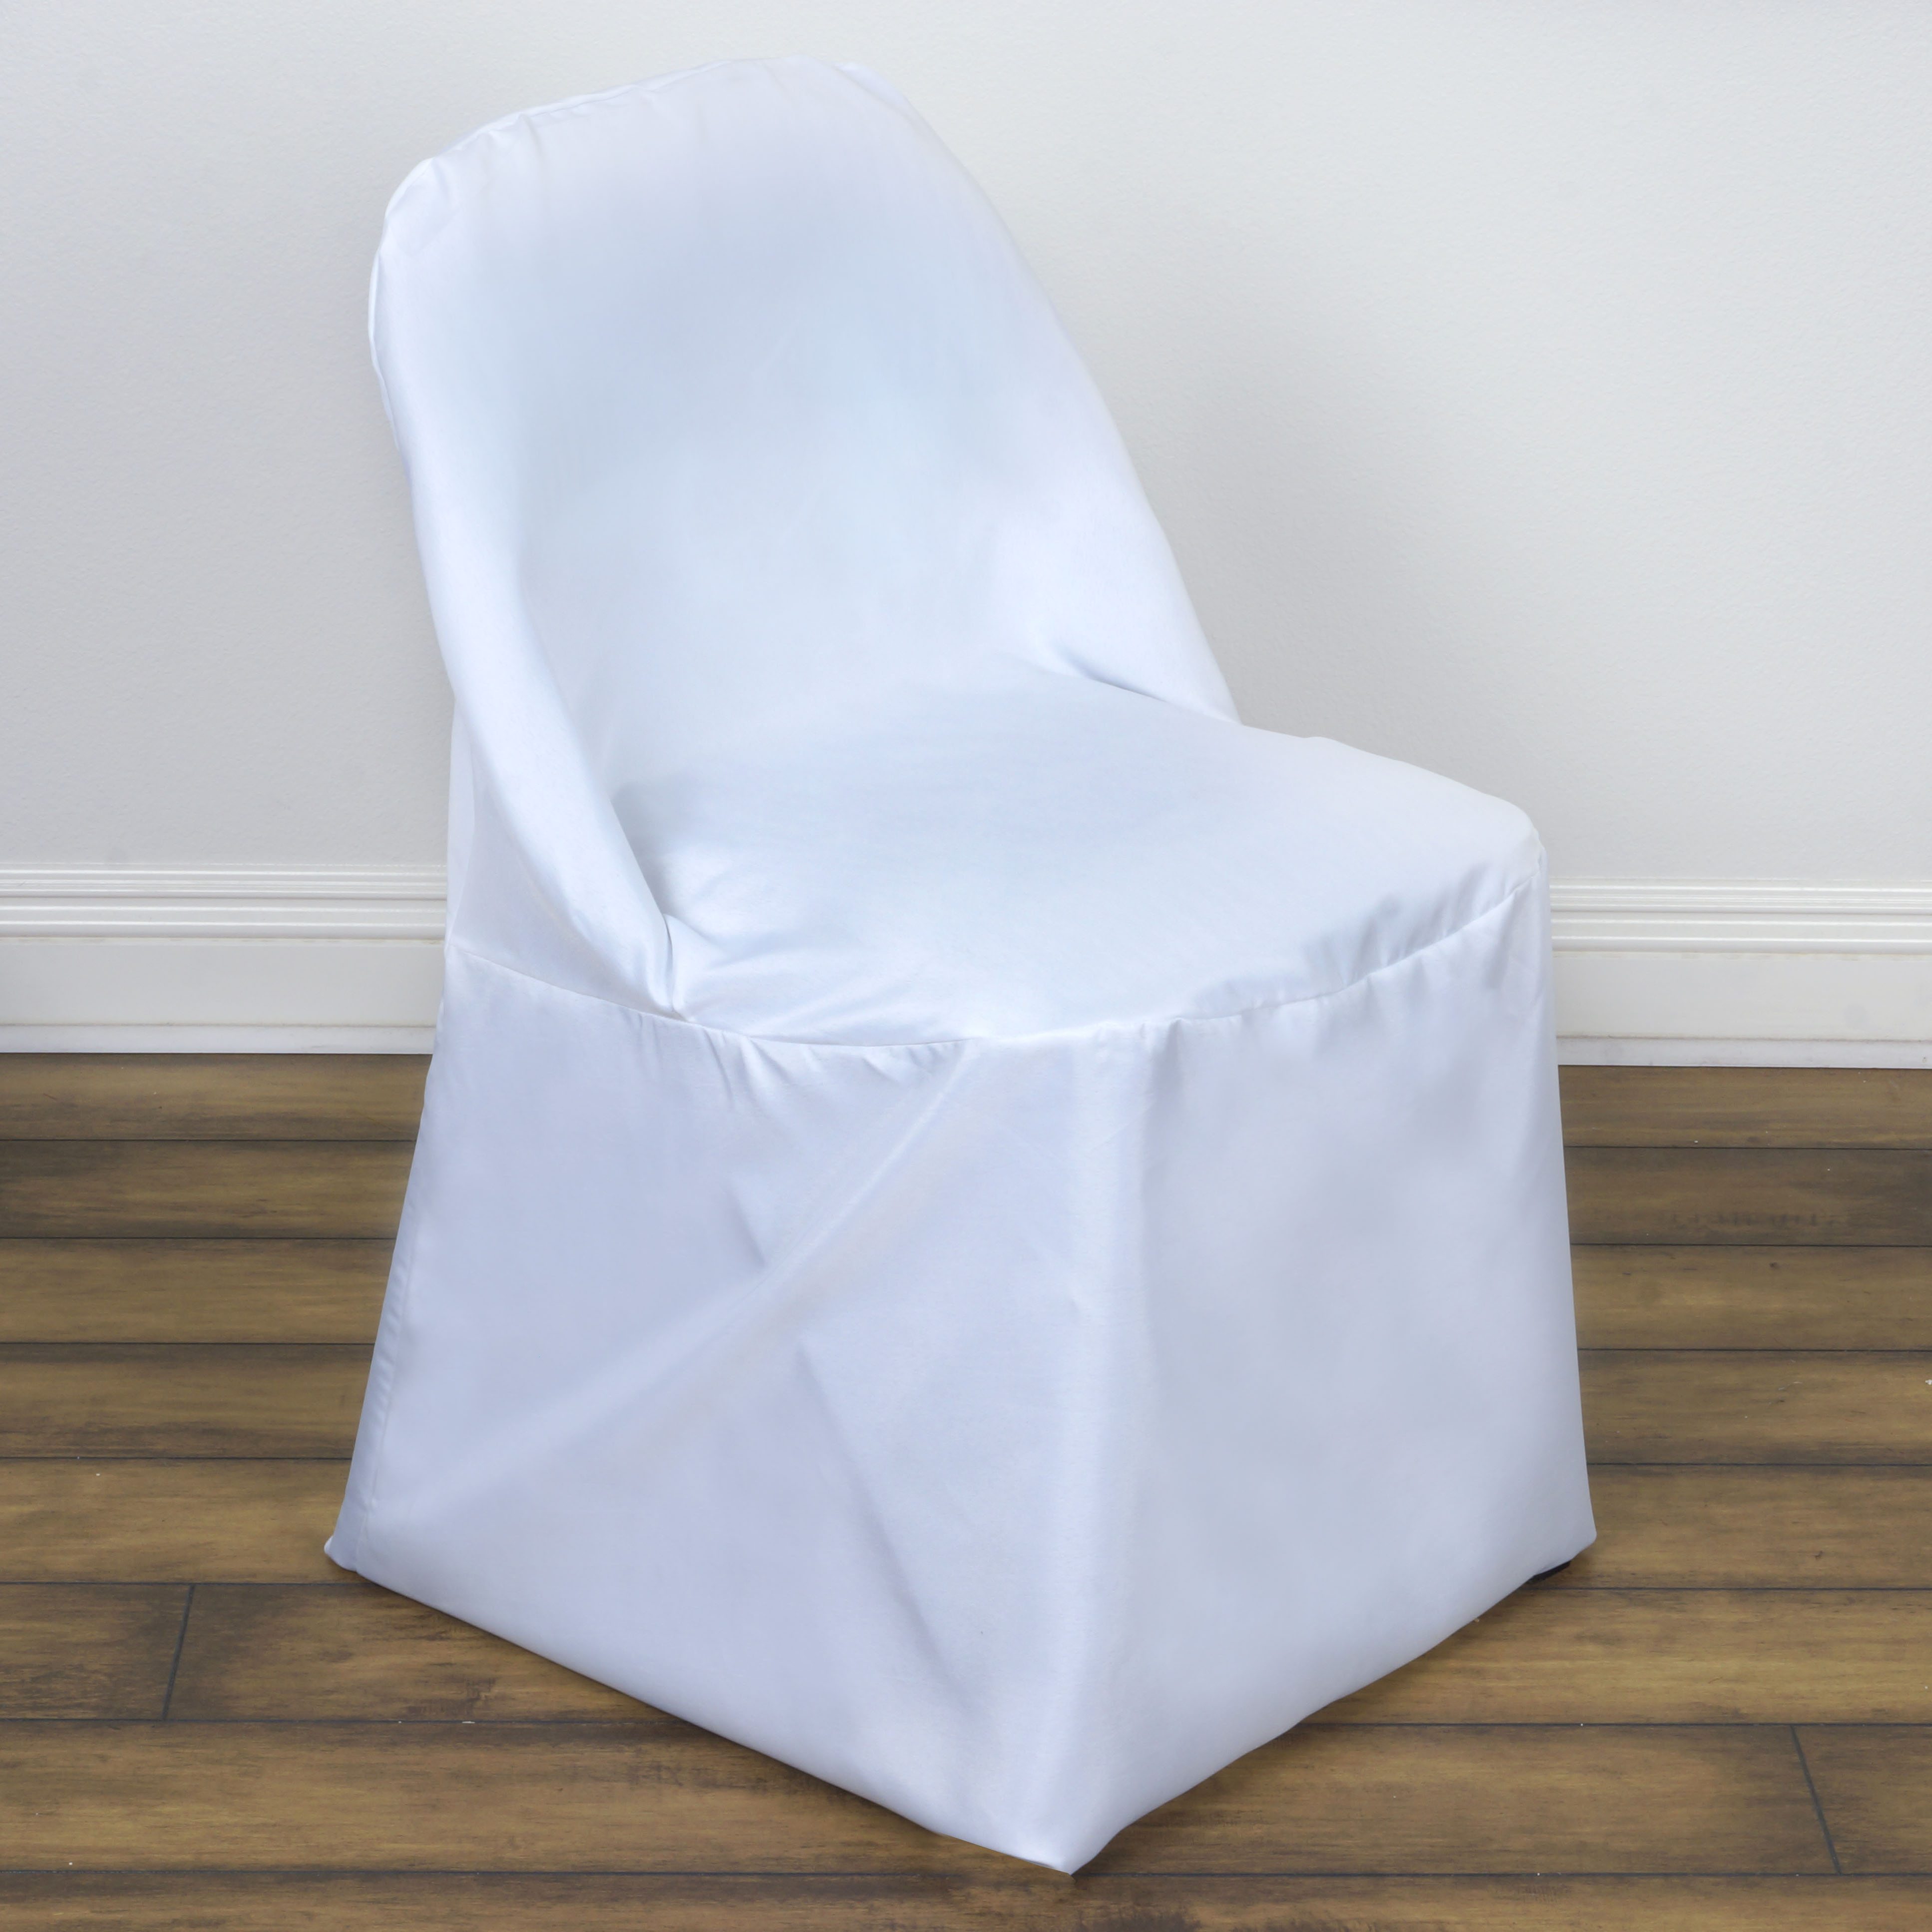 50 Folding Round Polyester Fabric Chair Covers Wedding